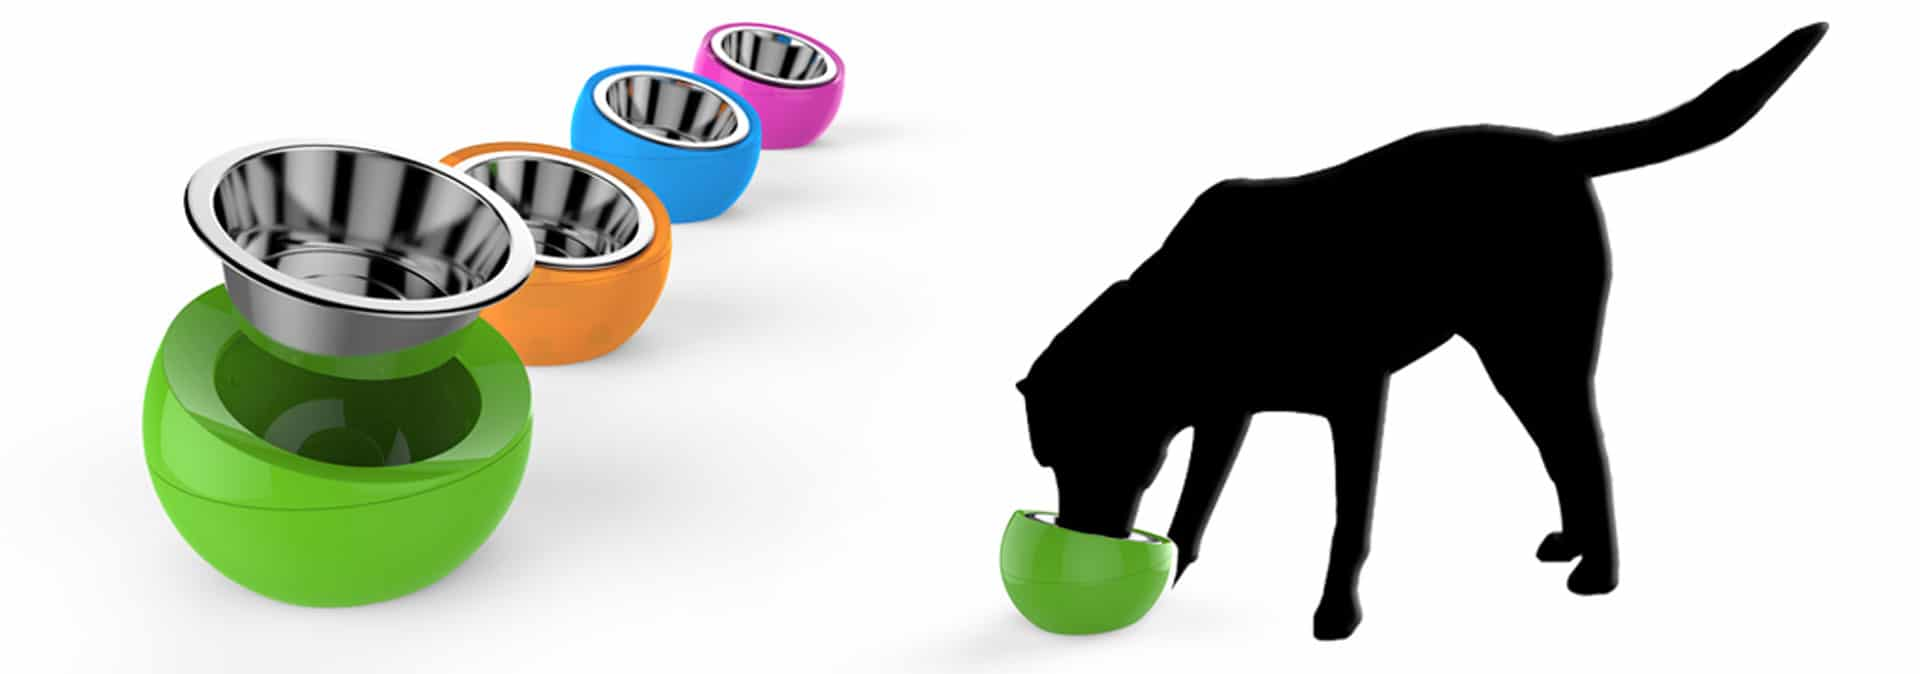 Pet bowl product idea design development